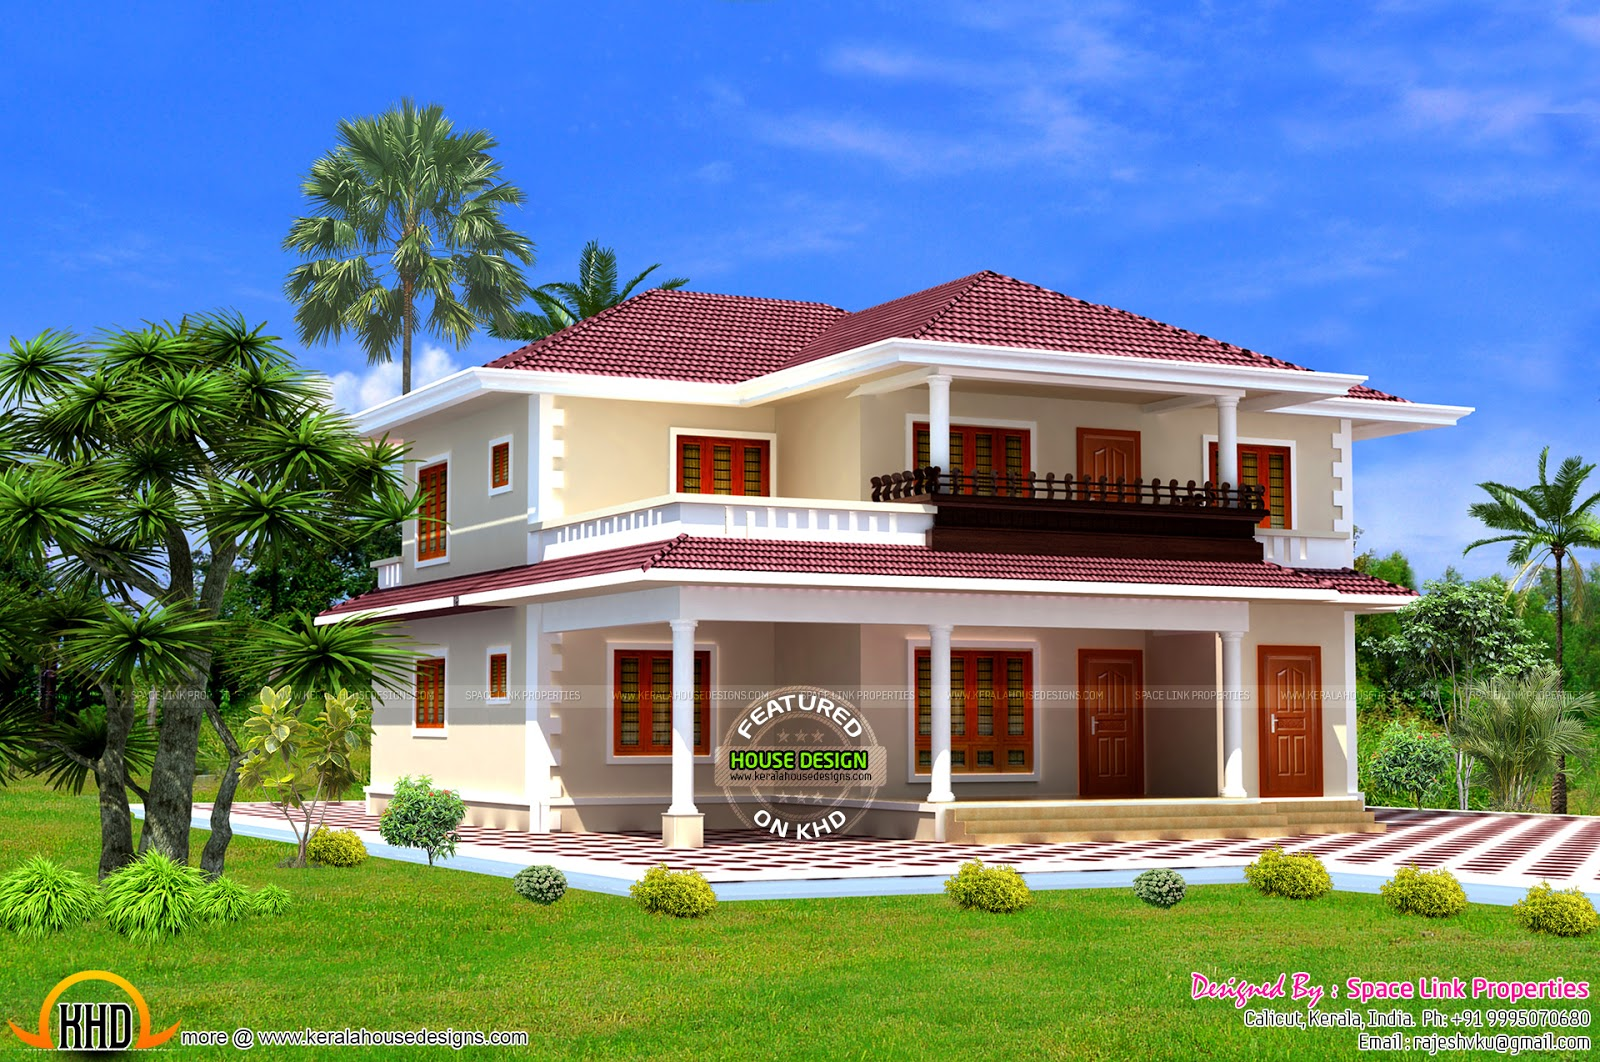 August 2015 kerala home design and floor plans Model plans for house